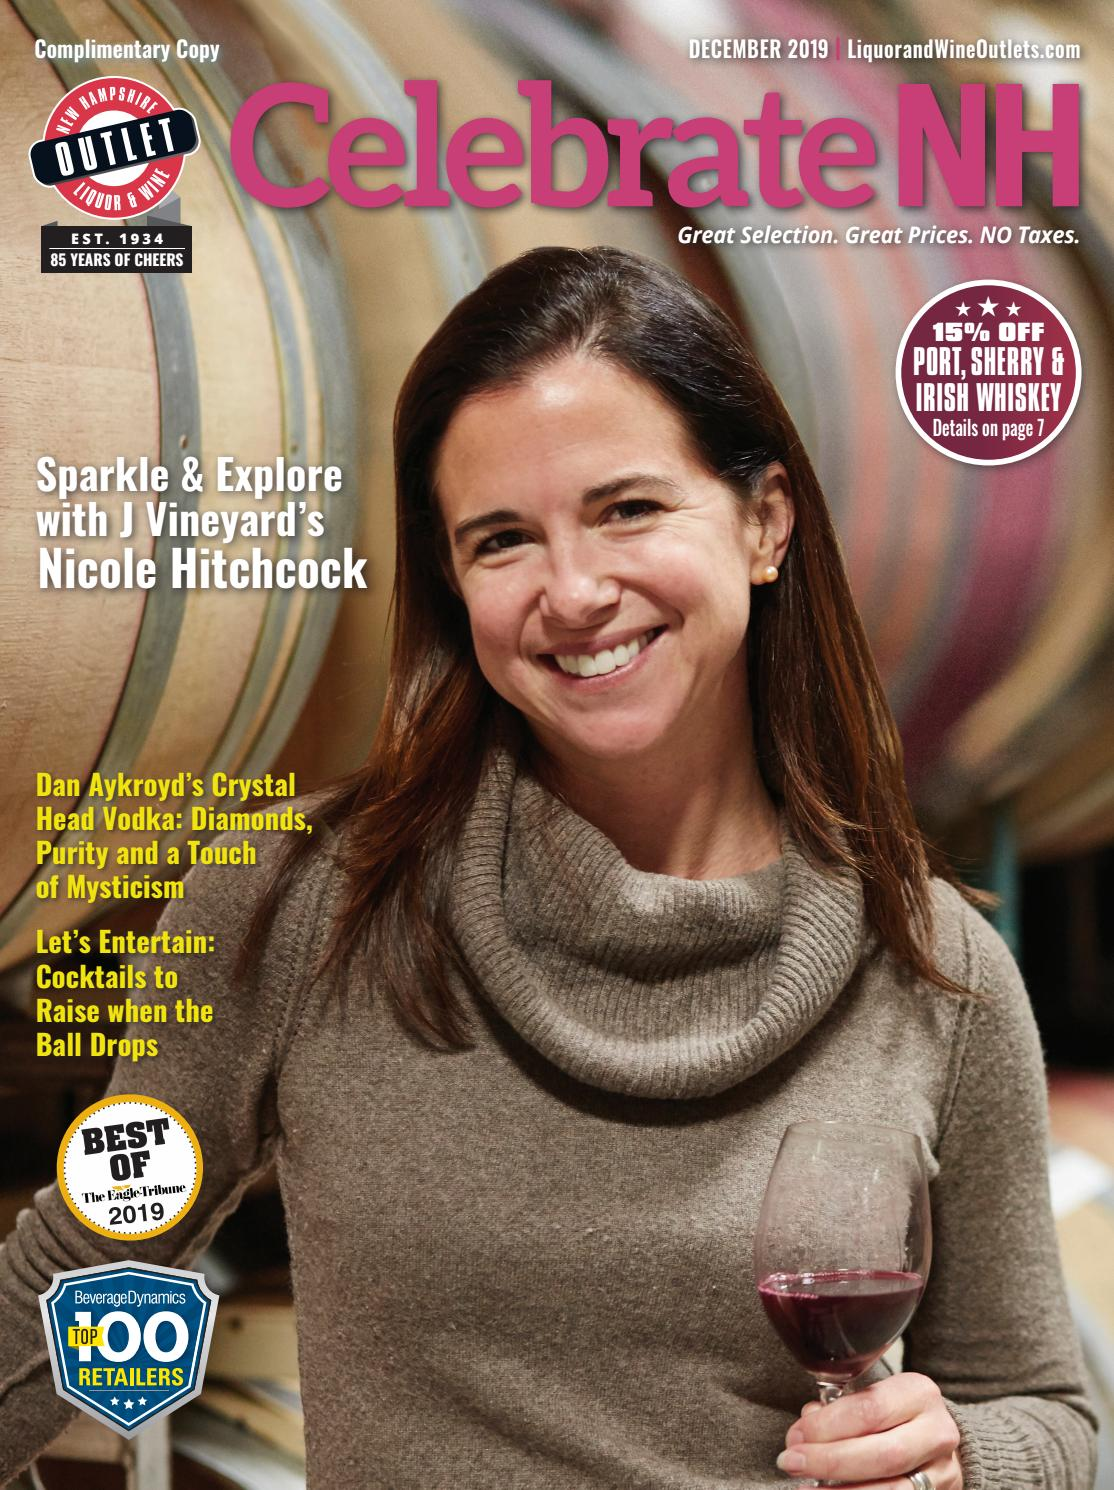 Angela Jane Melini celebrate nh december 2019mclean communications - issuu